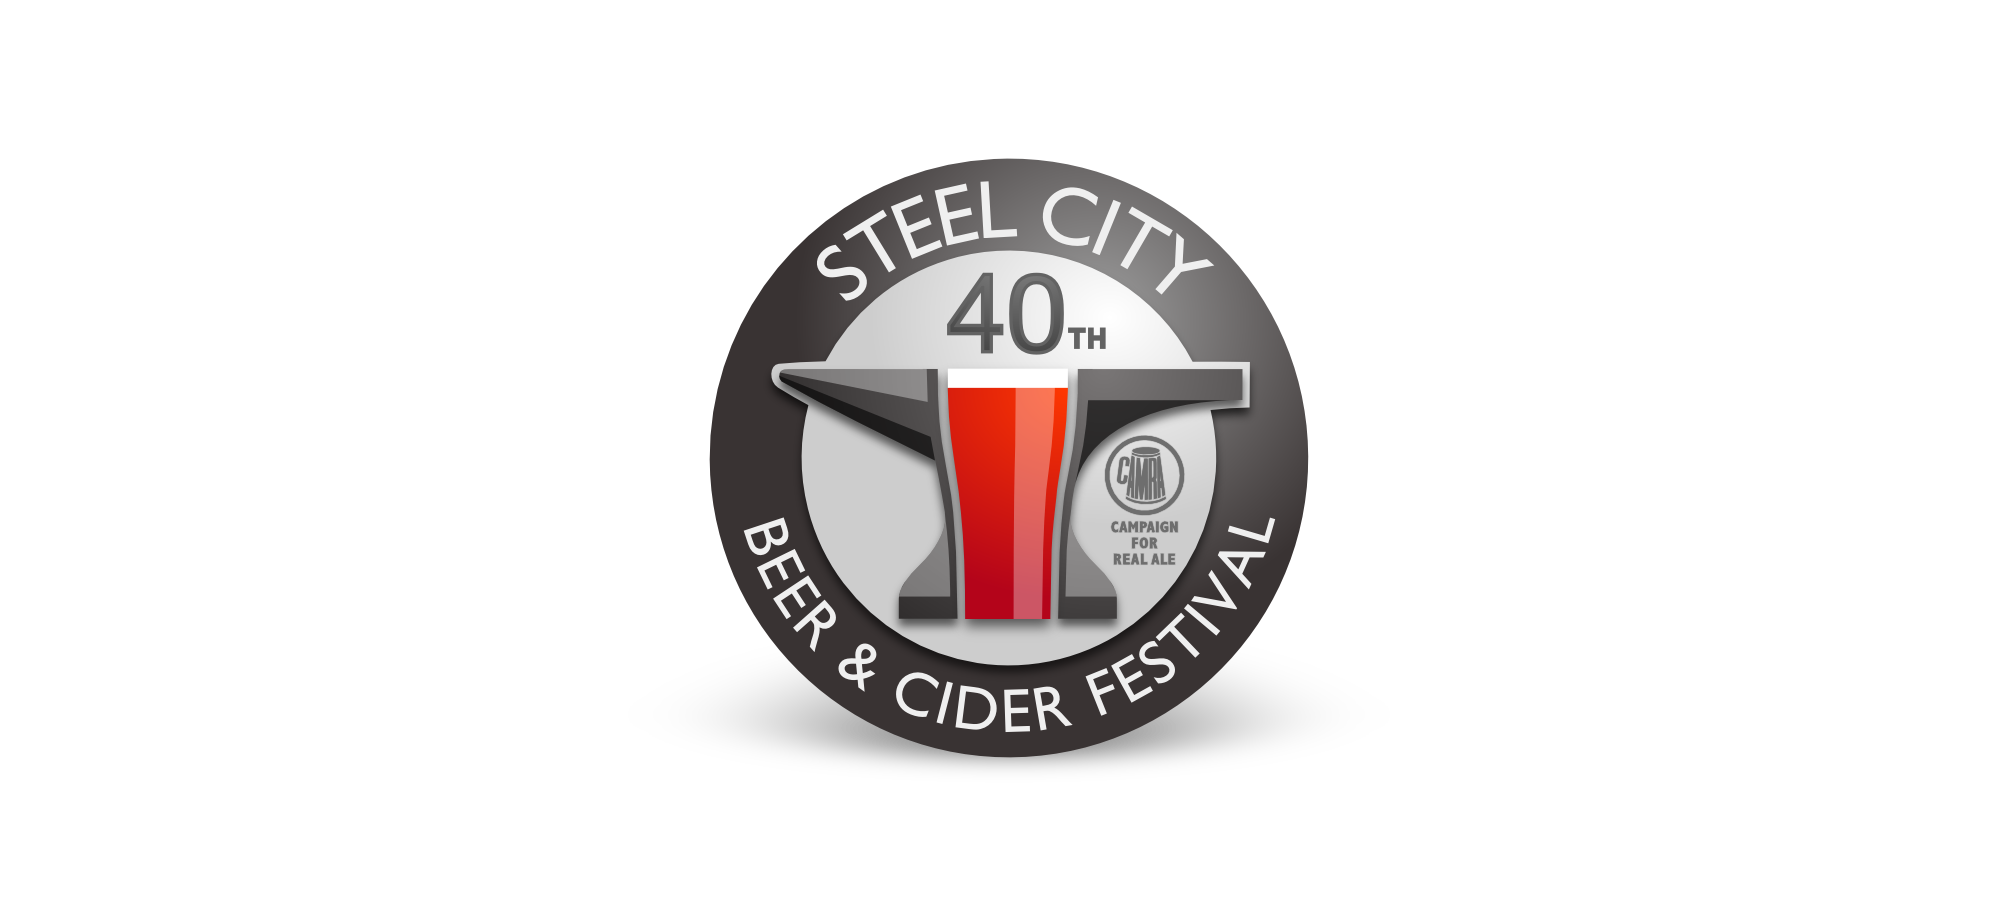 40th Steel City Festival Logo